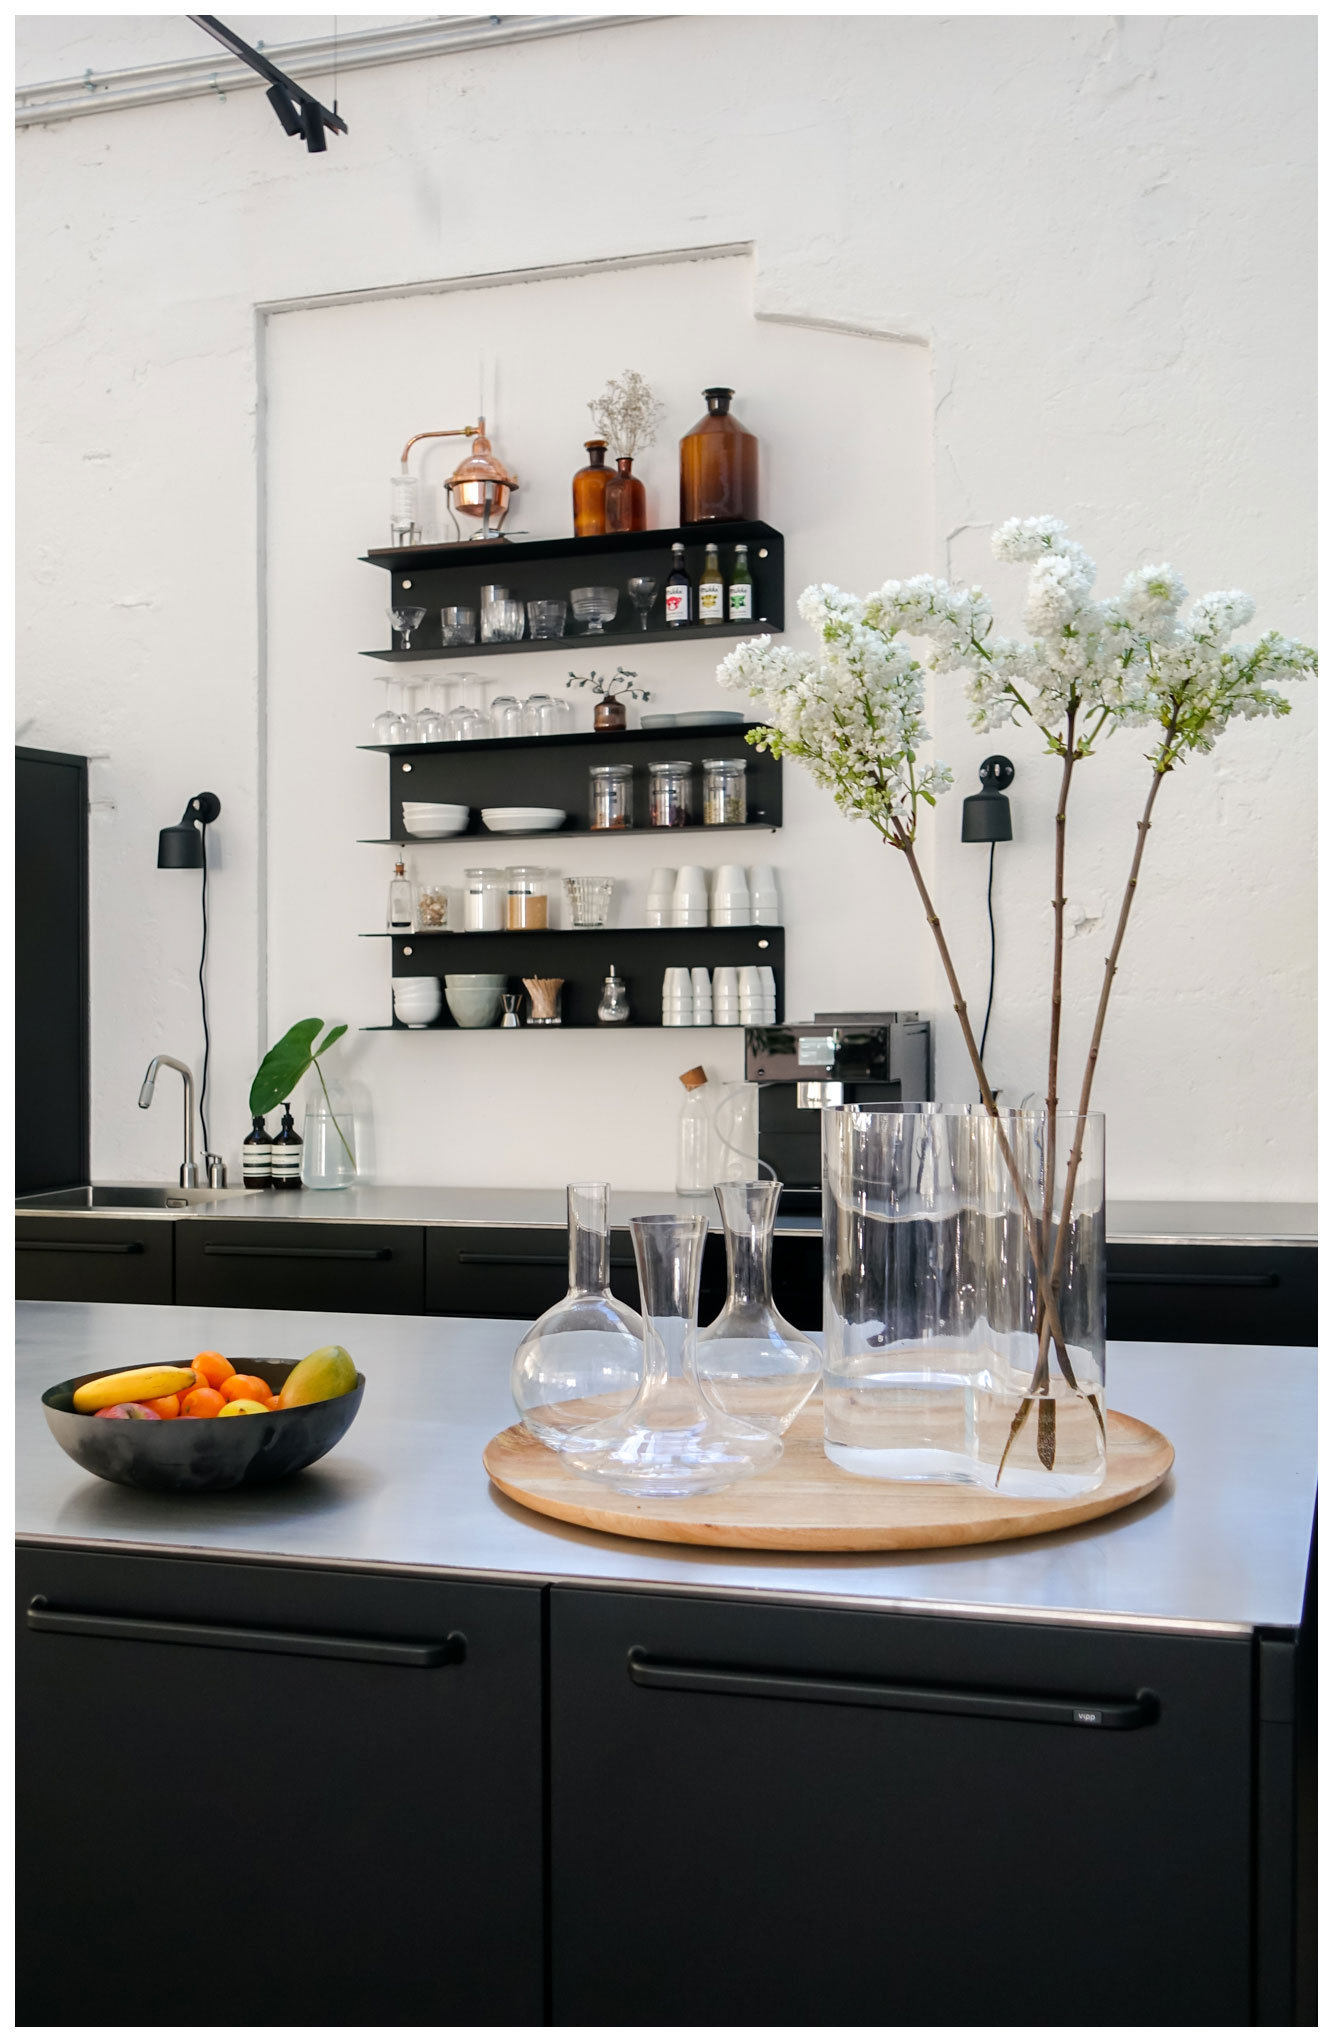 Vipp kitchen in coworking office with flowers on kitchen island